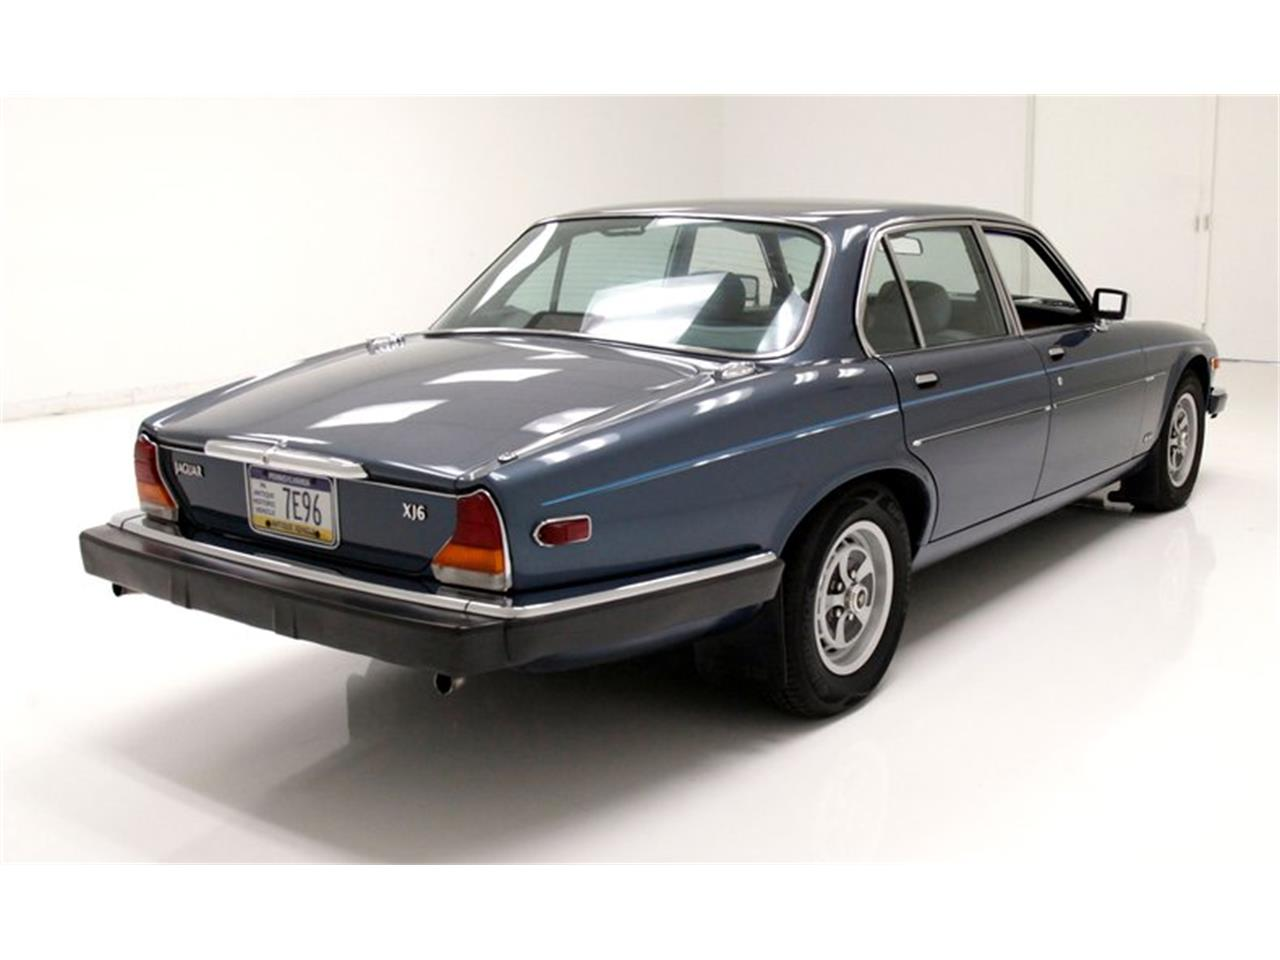 1986 Jaguar XJ6 (CC-1414091) for sale in Morgantown, Pennsylvania